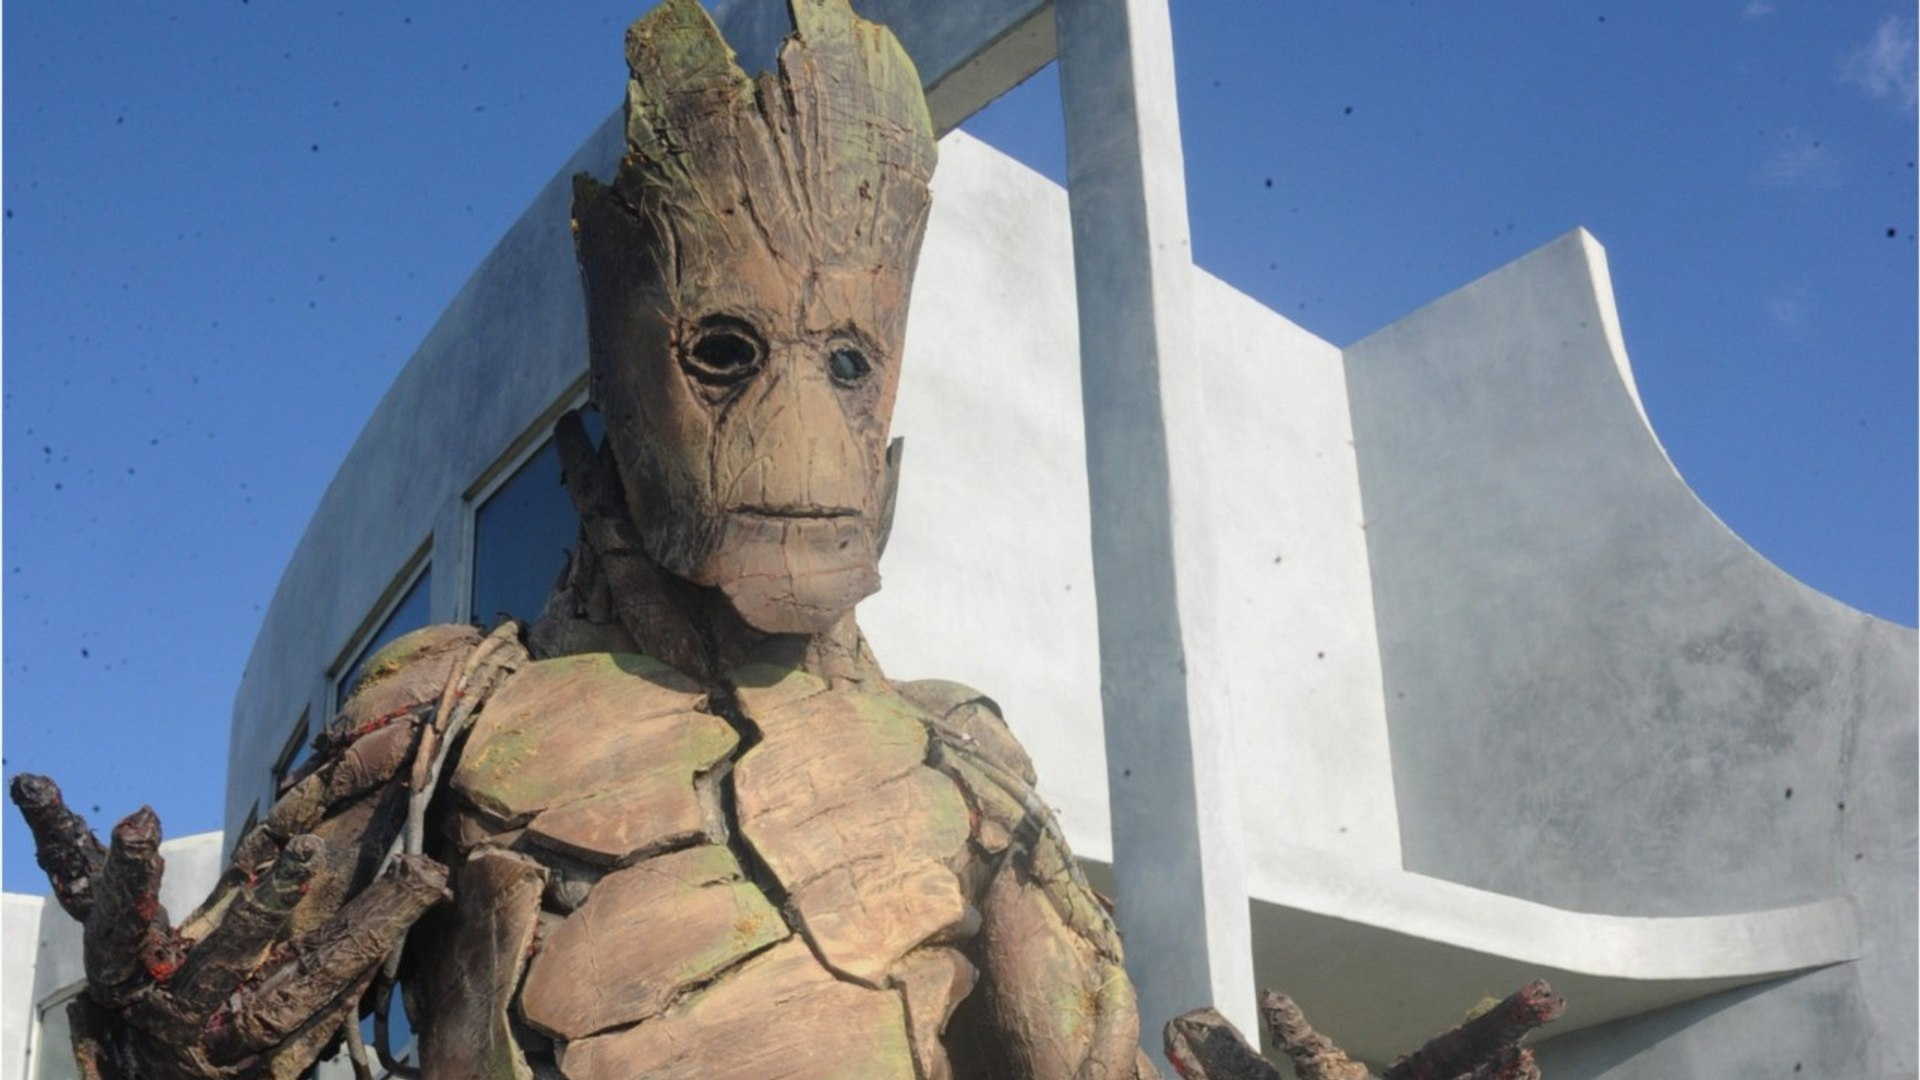 This Groot/Deadpool Mashup is Equally Adorable and Deadly